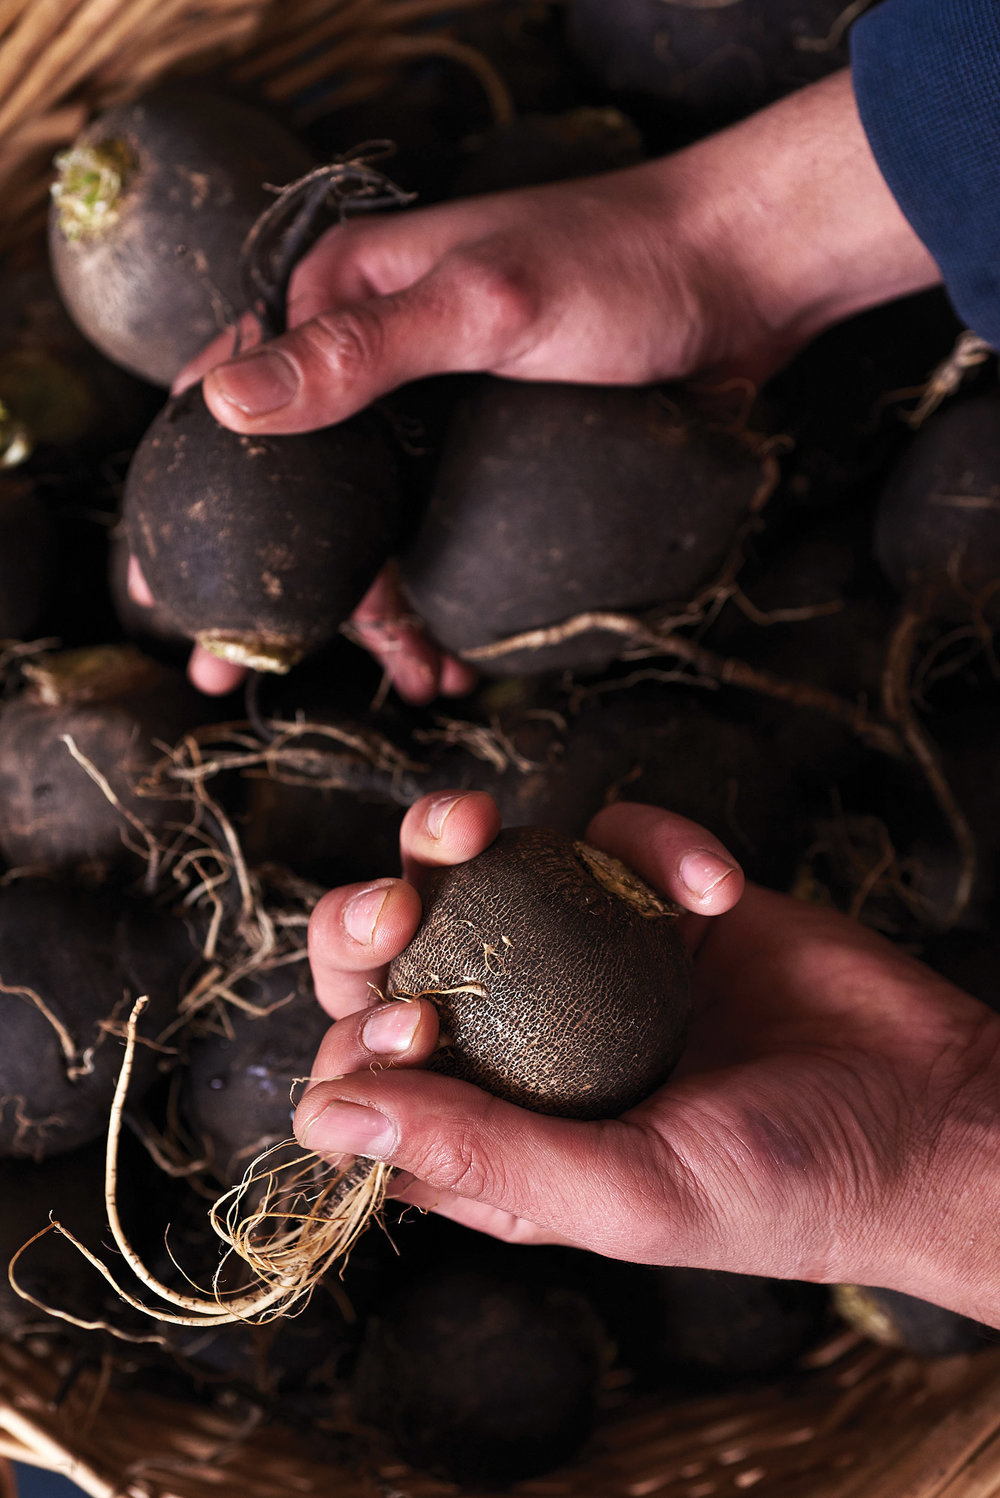 Loic Le Guen, Blooming Glen Farm, black radish